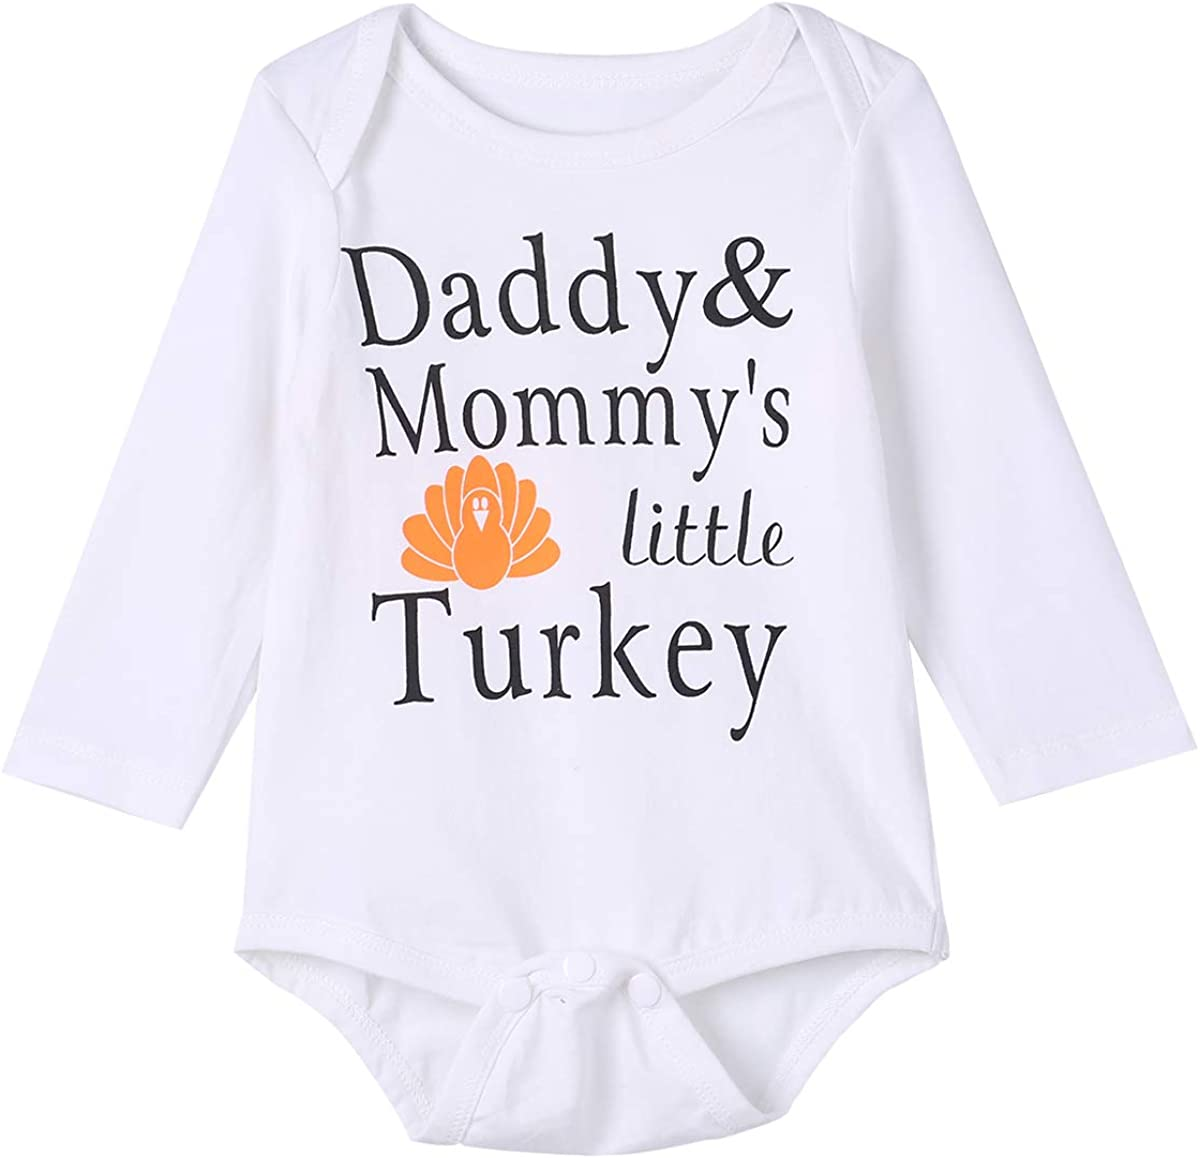 Baby Boys Girls Thanksgiving Outfit Daddy Mommys Little Turkey Clothes Set